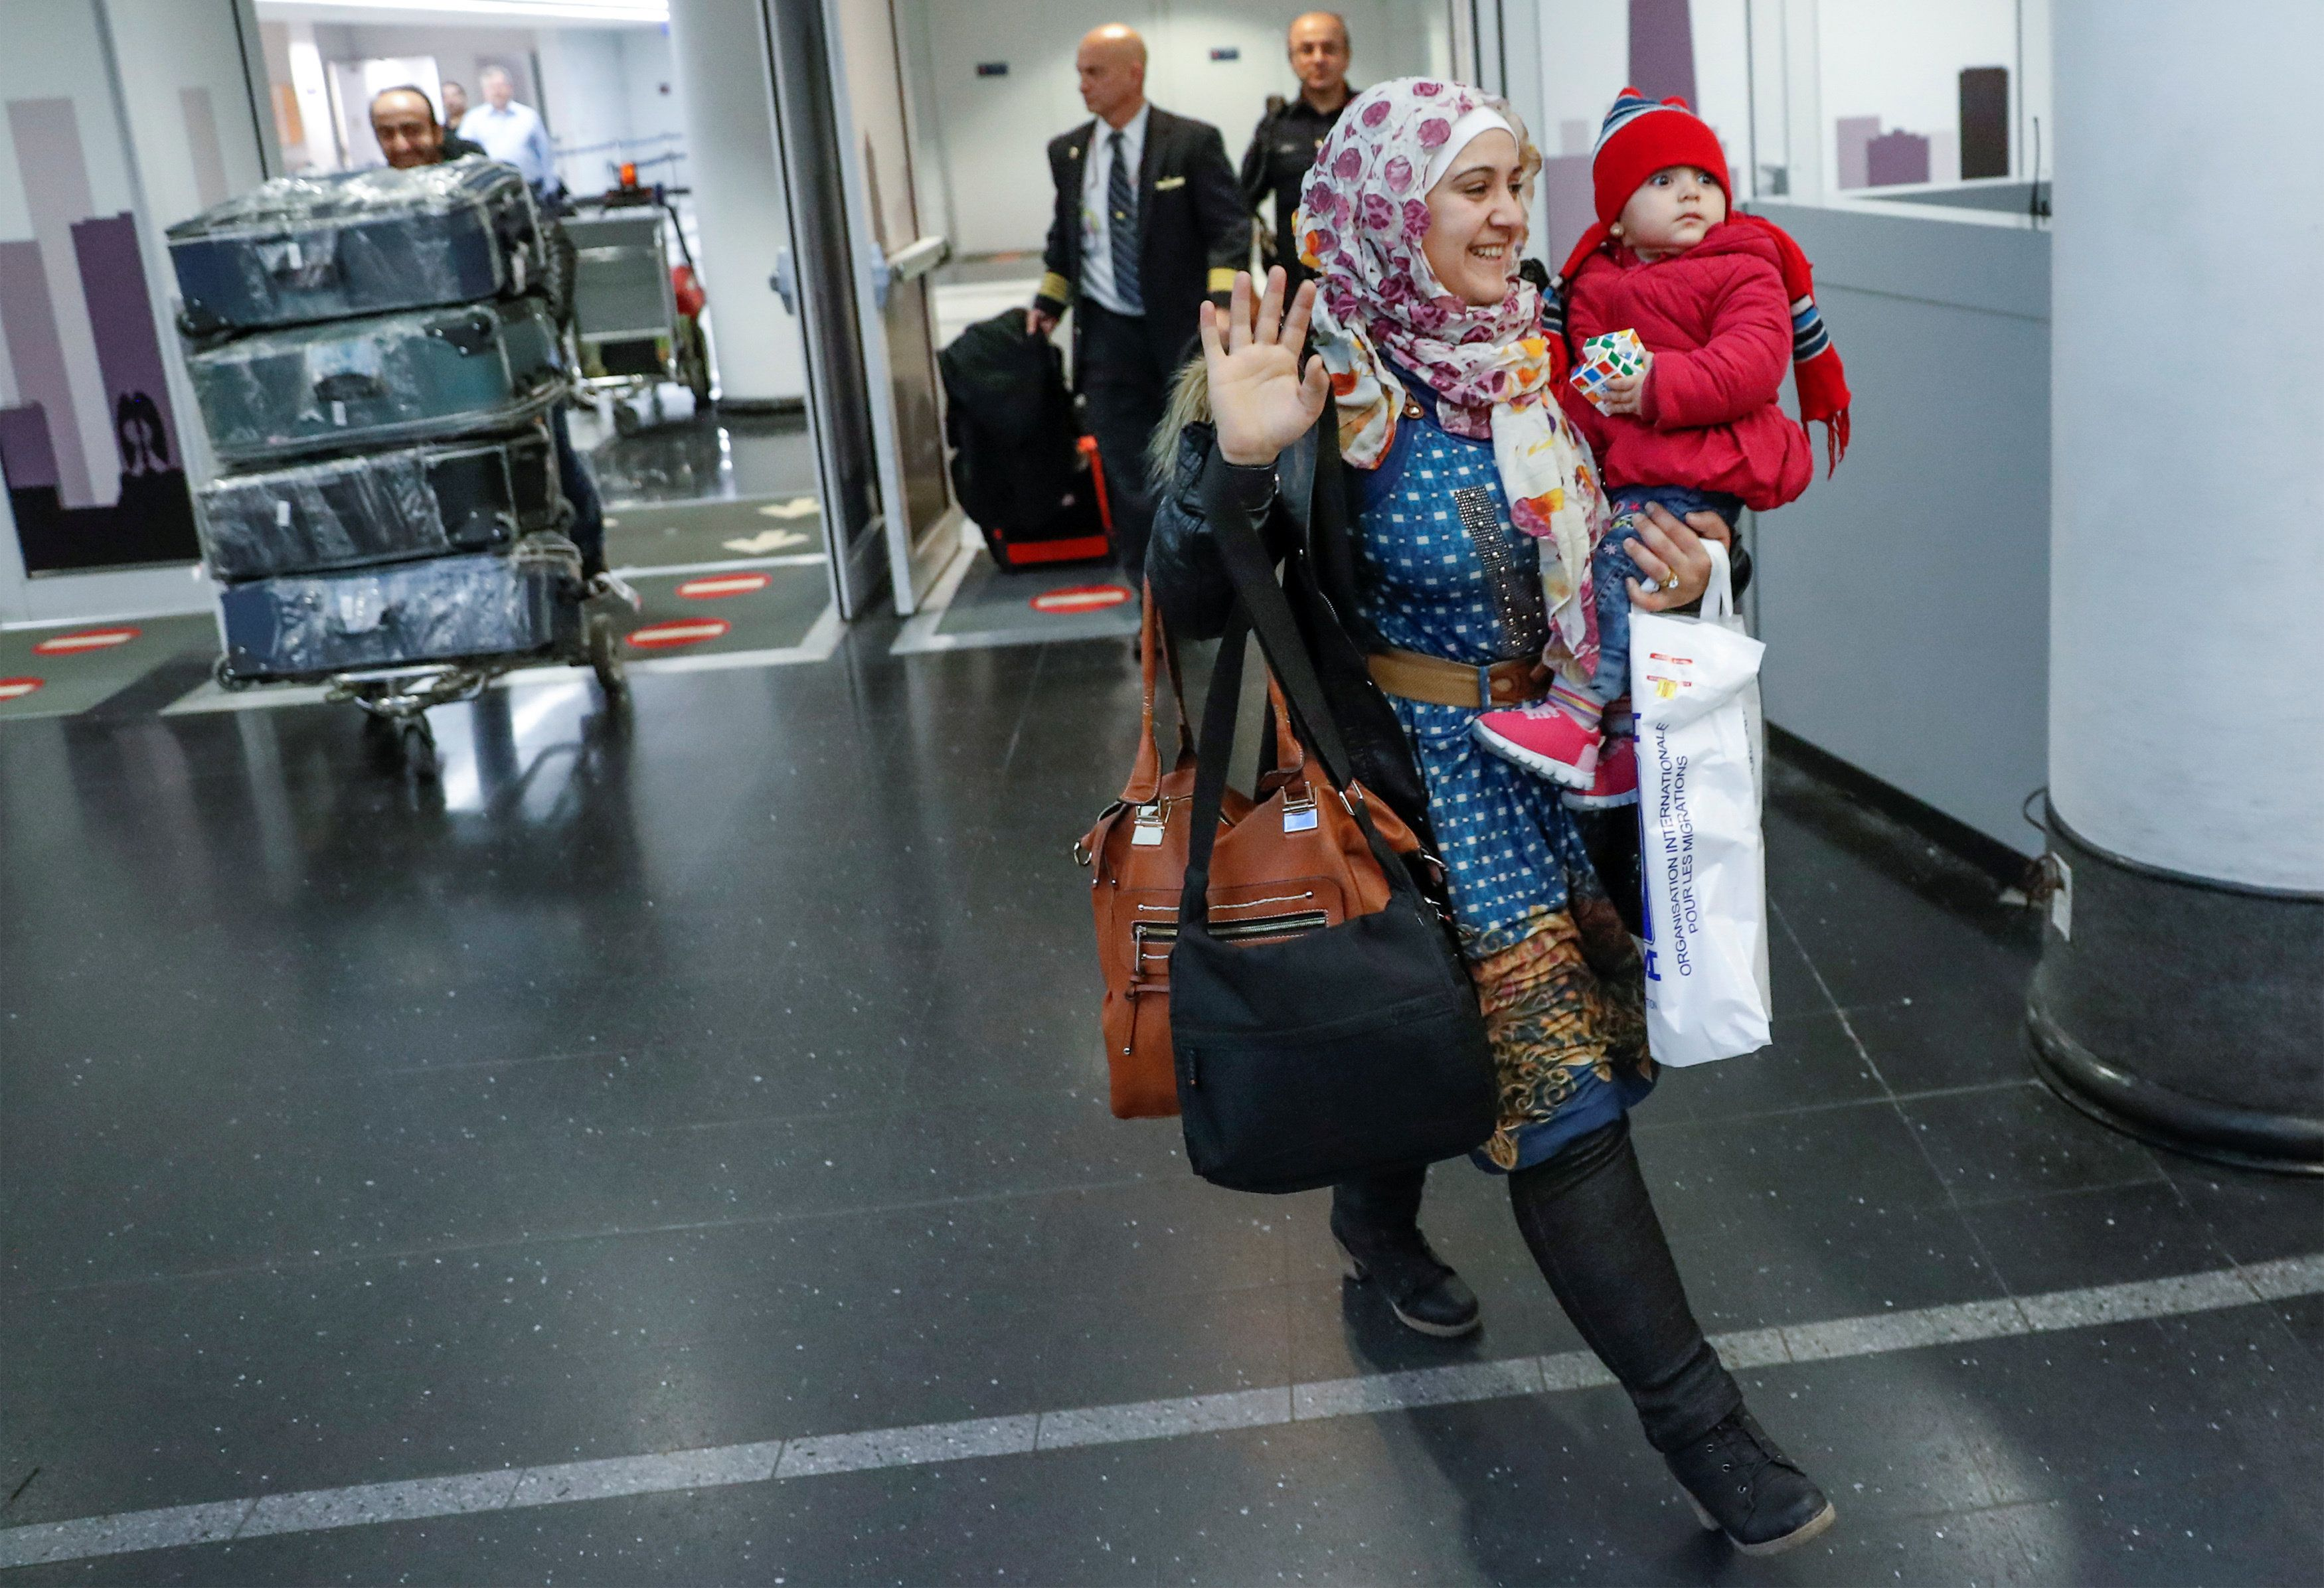 Syrian refugee Baraa Haj Khalaf, her daughter Shams, 1, and husband Abdulmajeed arrive at O'Hare International Airport in Chi